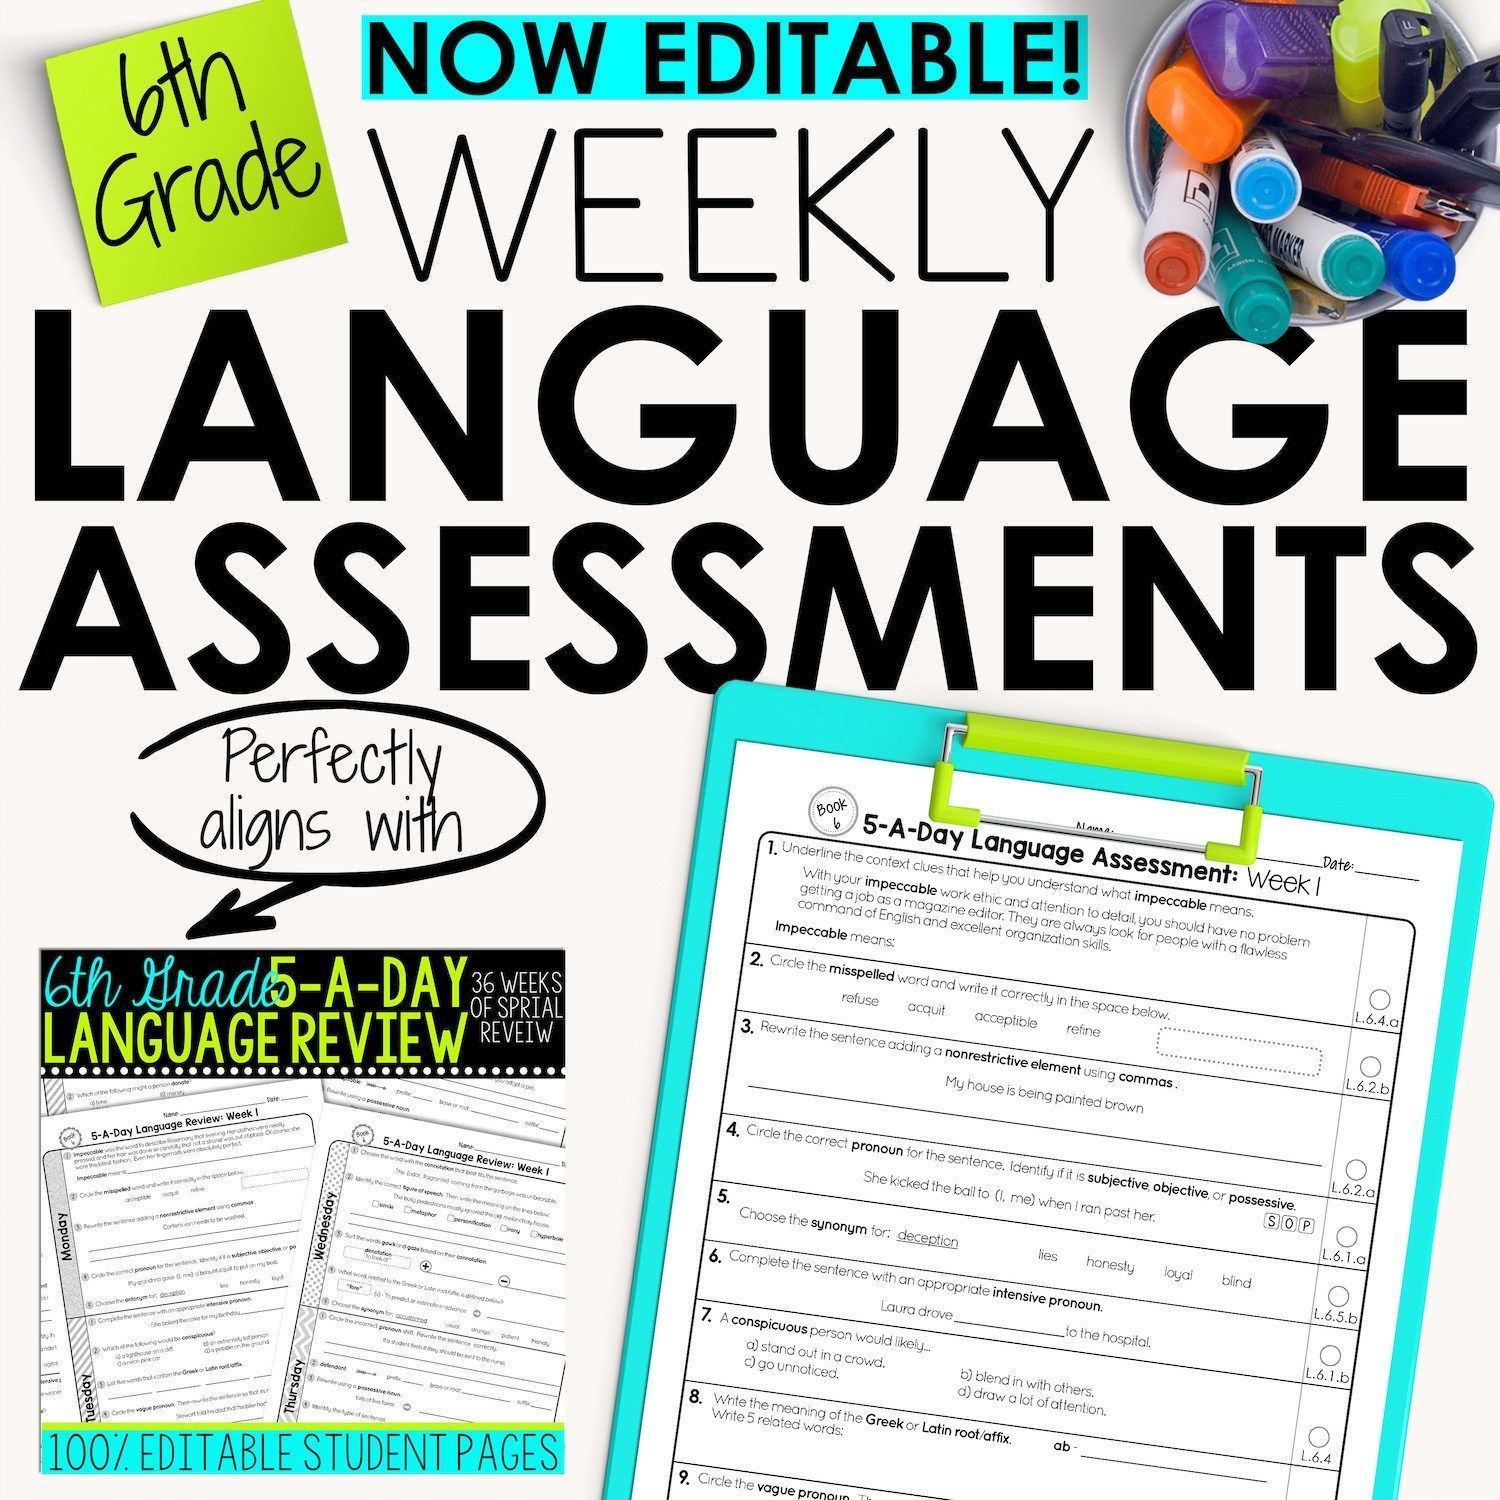 6th Grade Weekly Language Assessments